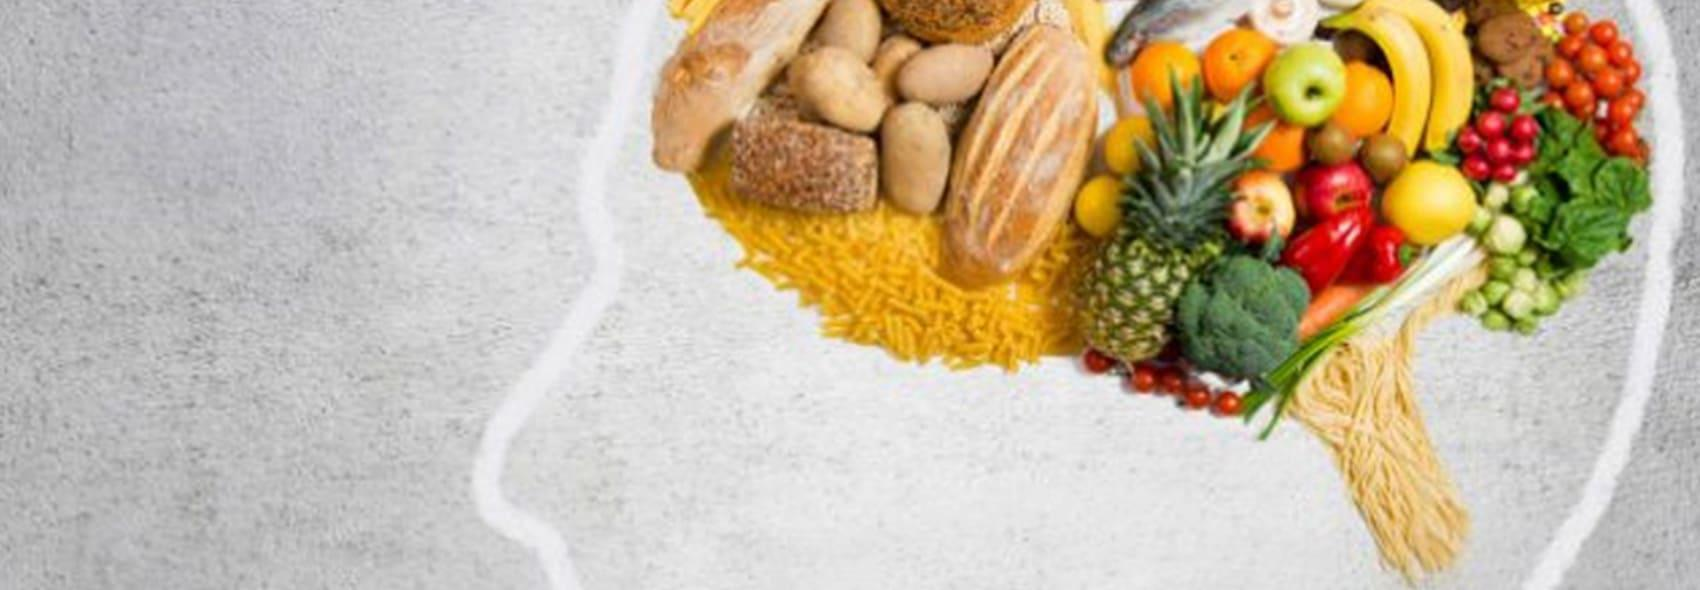 Brain food - fruits and grains